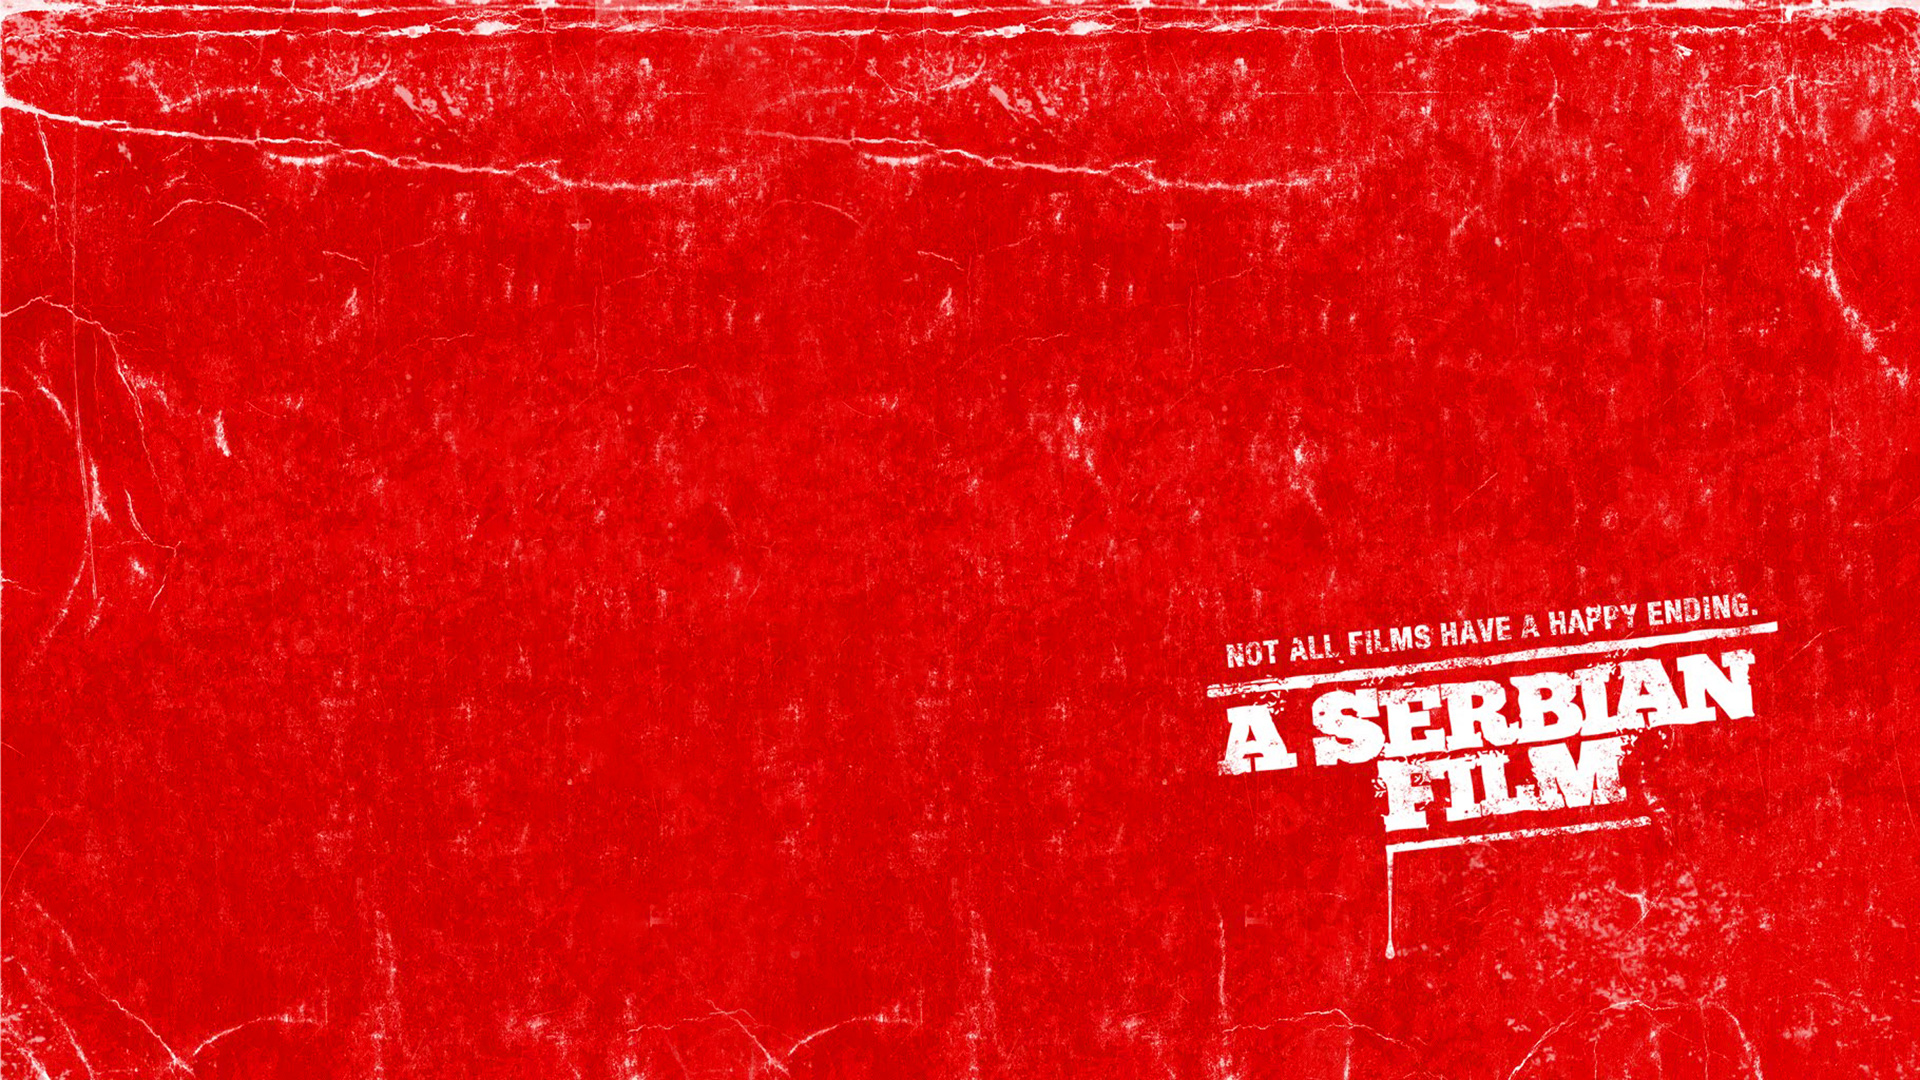 a serbian film full movie download in english